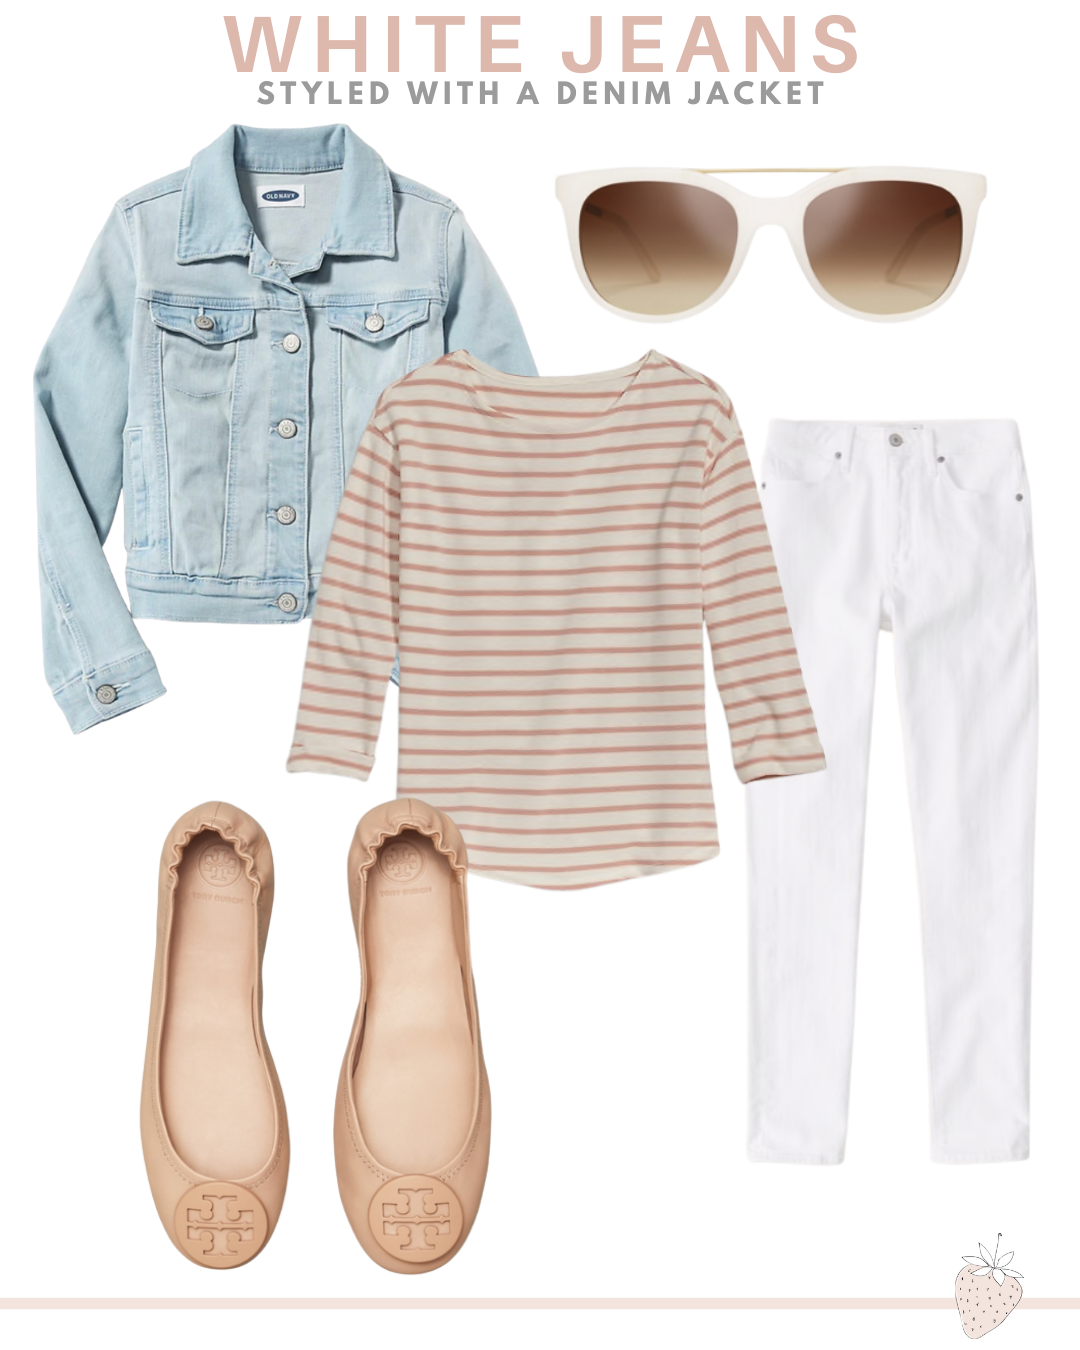 10 Different Ways to Style White Jeans